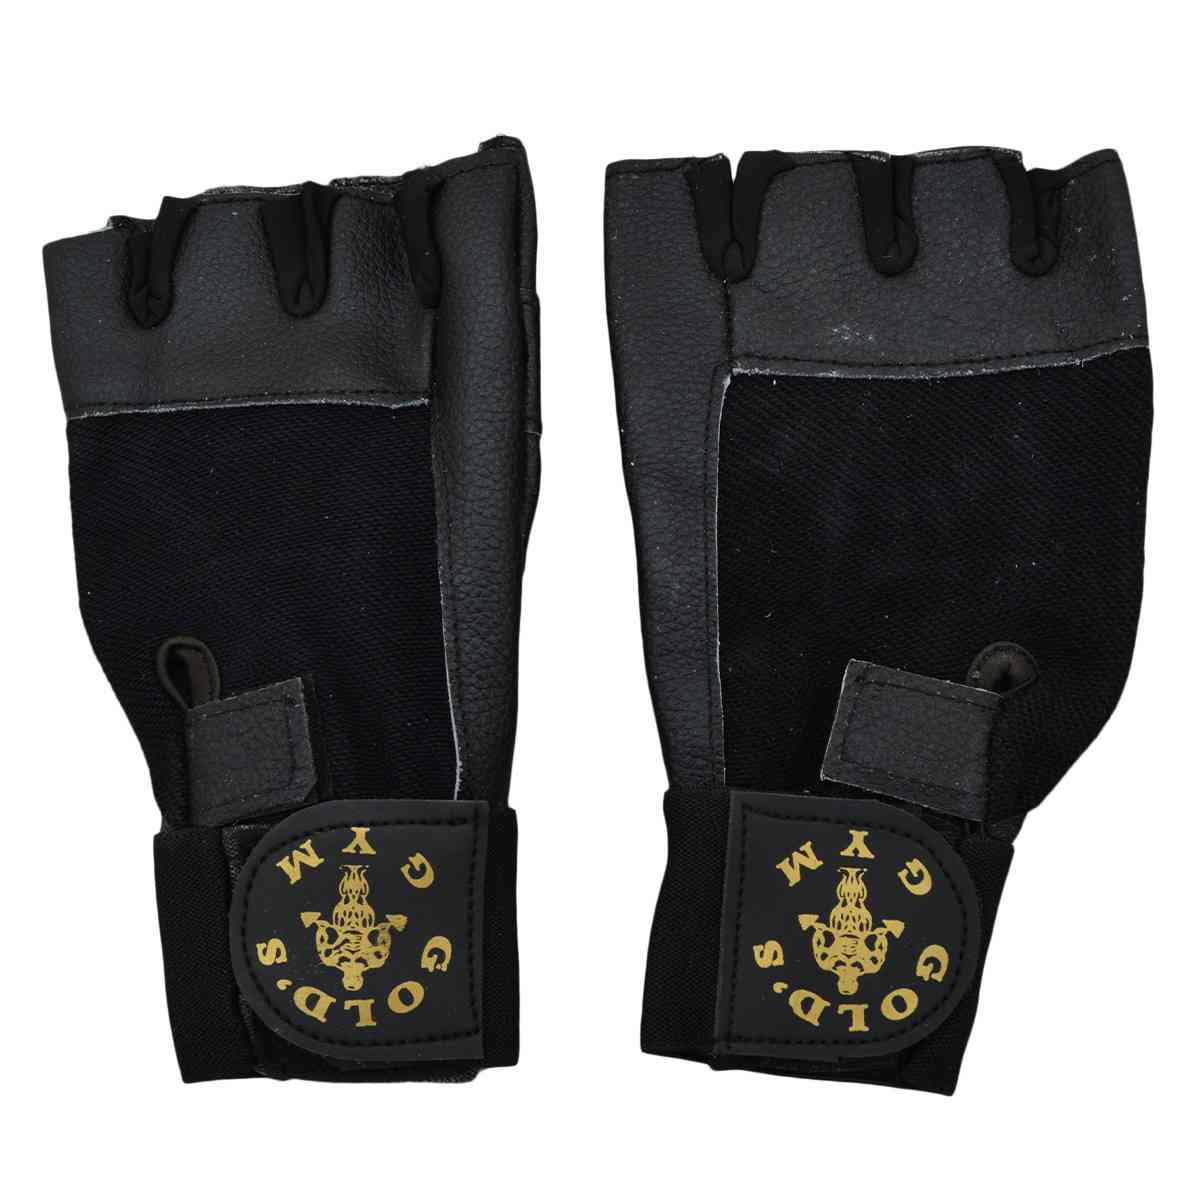 2 Pcs Gym Gloves - Black